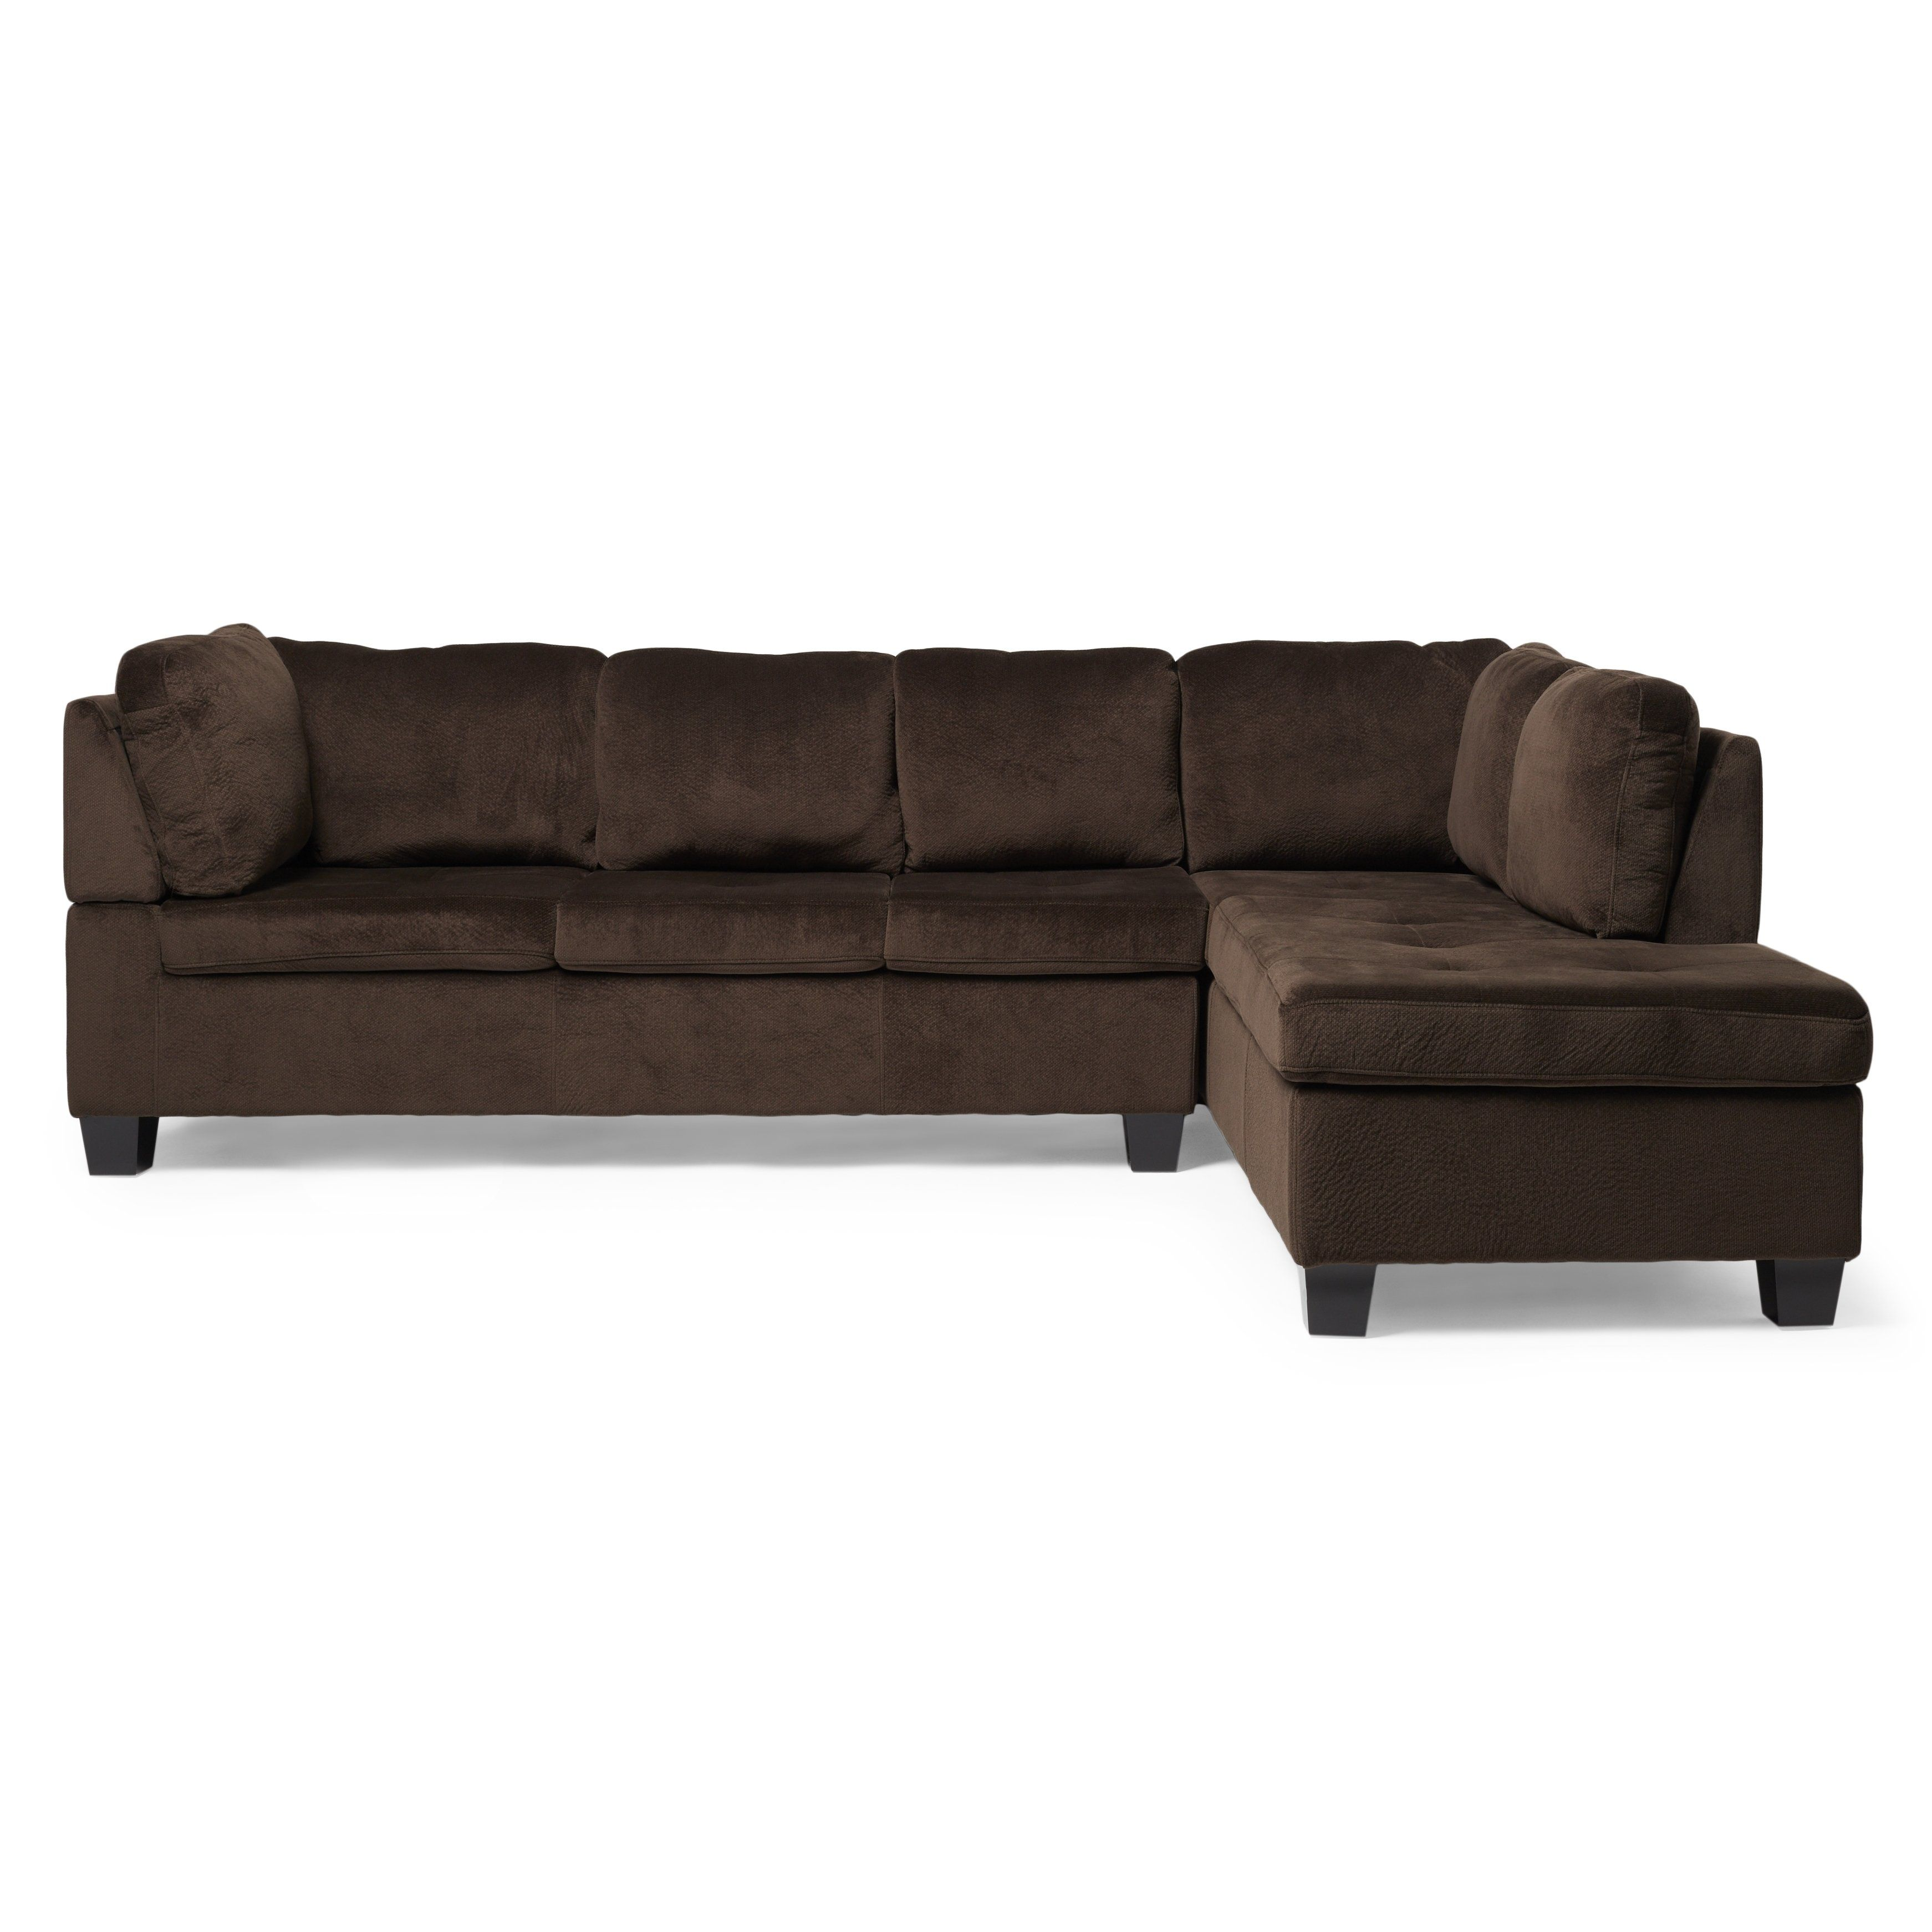 Valentine S T Shirt Sw3637t For Sell In Bangladesh Fabric Sectional Sofas Inflatable Sofa Bed Fabric Sectional